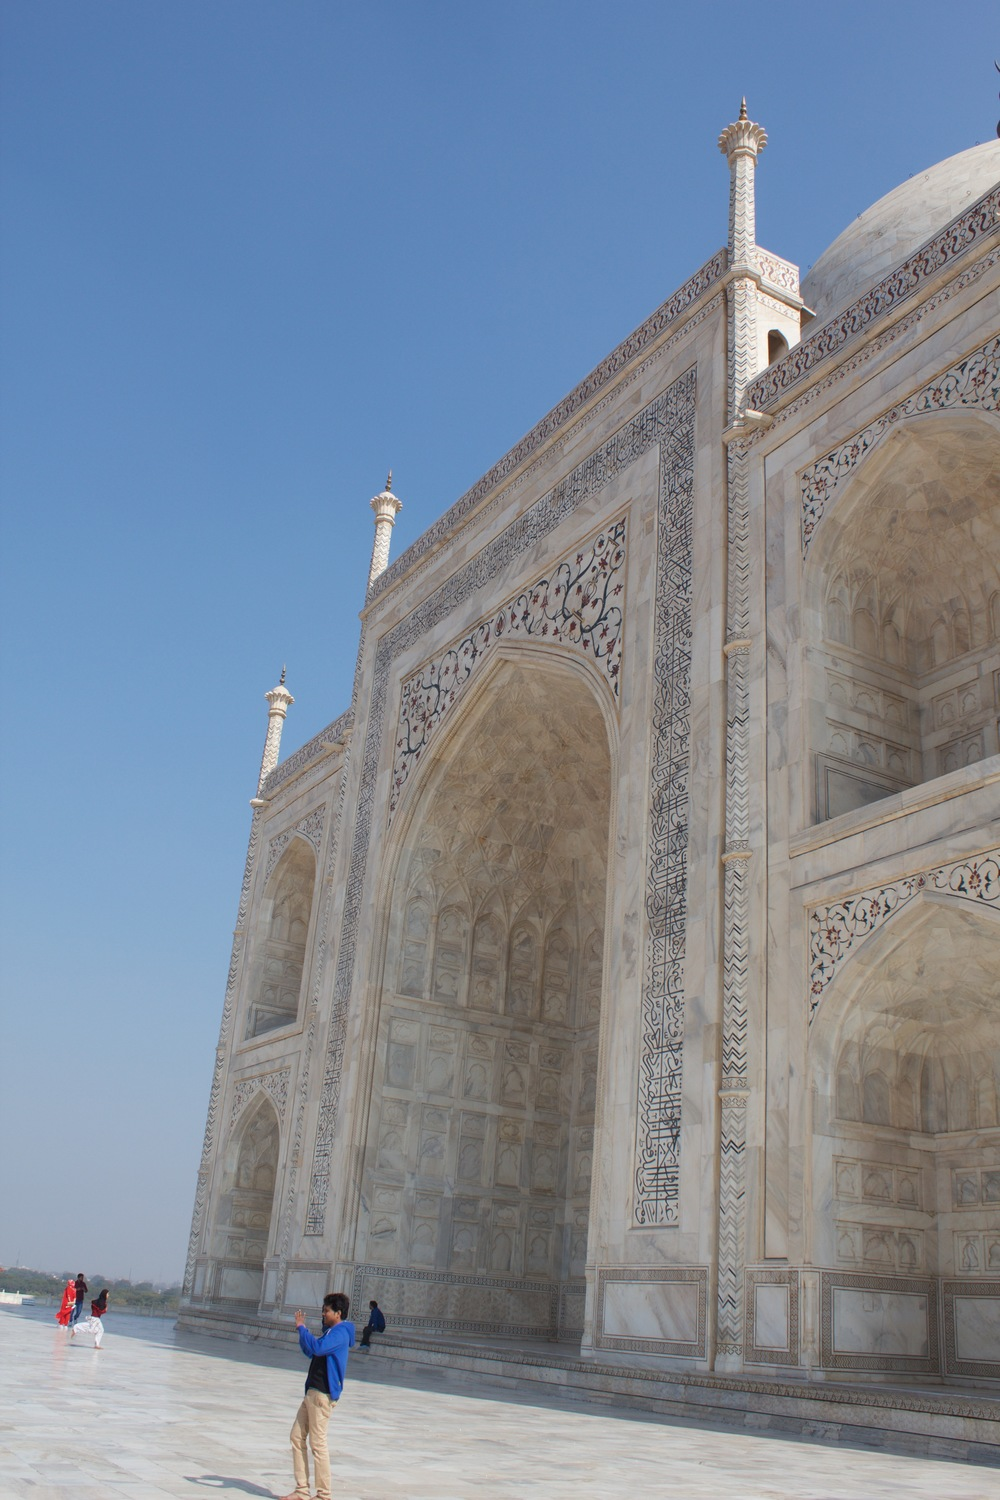 back side of the Taj Mahal